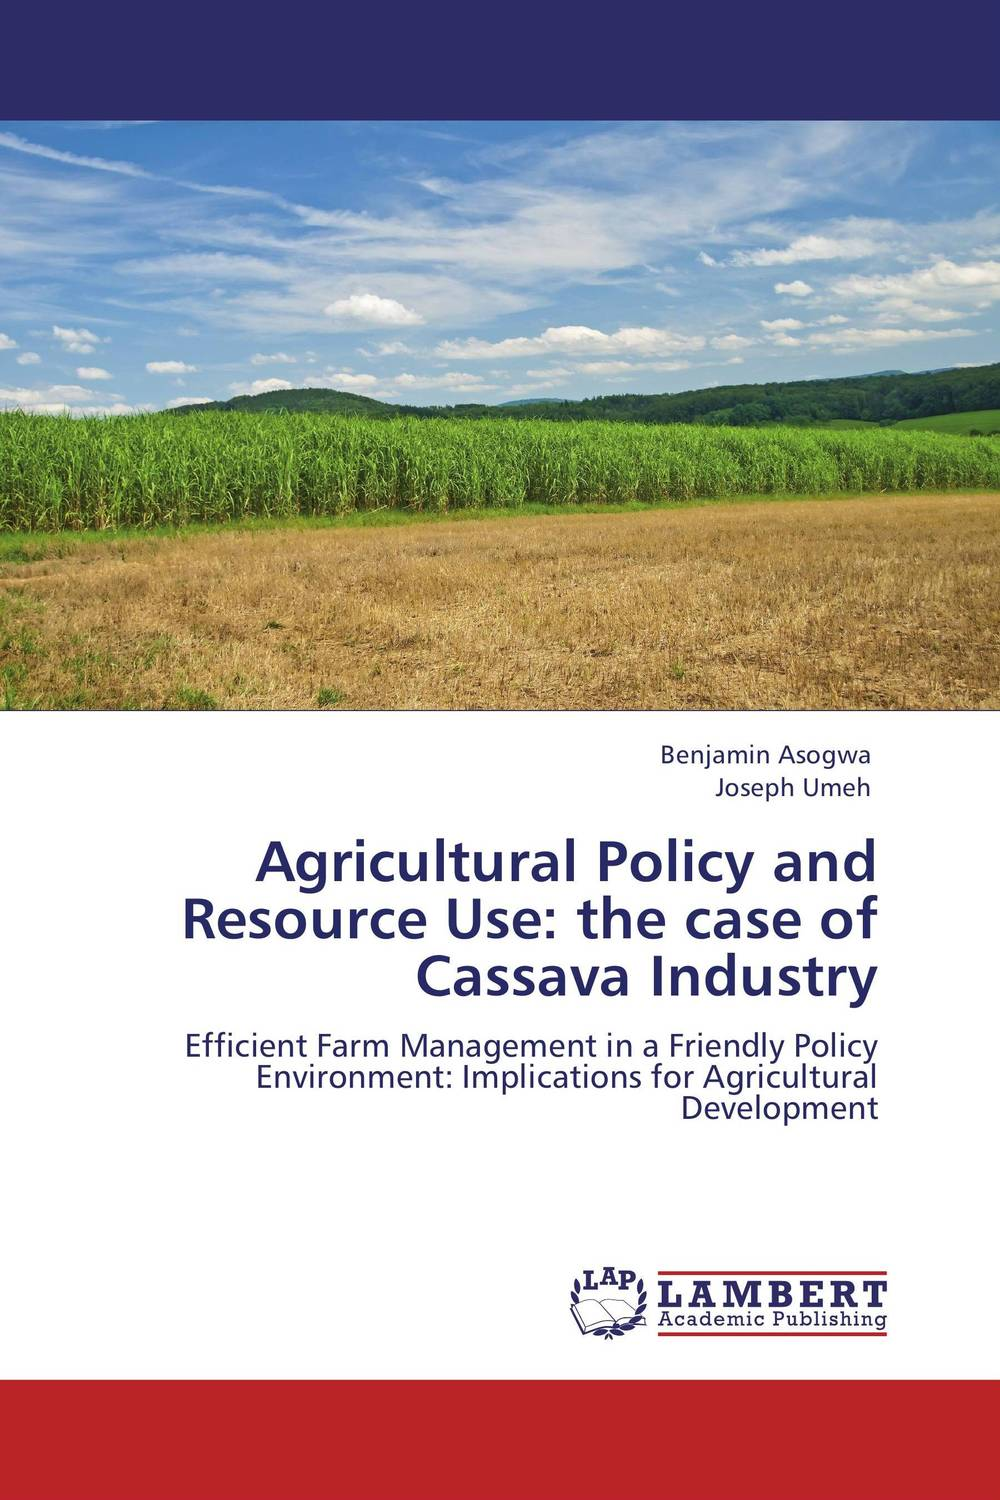 Agricultural Policy and Resource Use: the case of Cassava Industry lm2576s 3 3